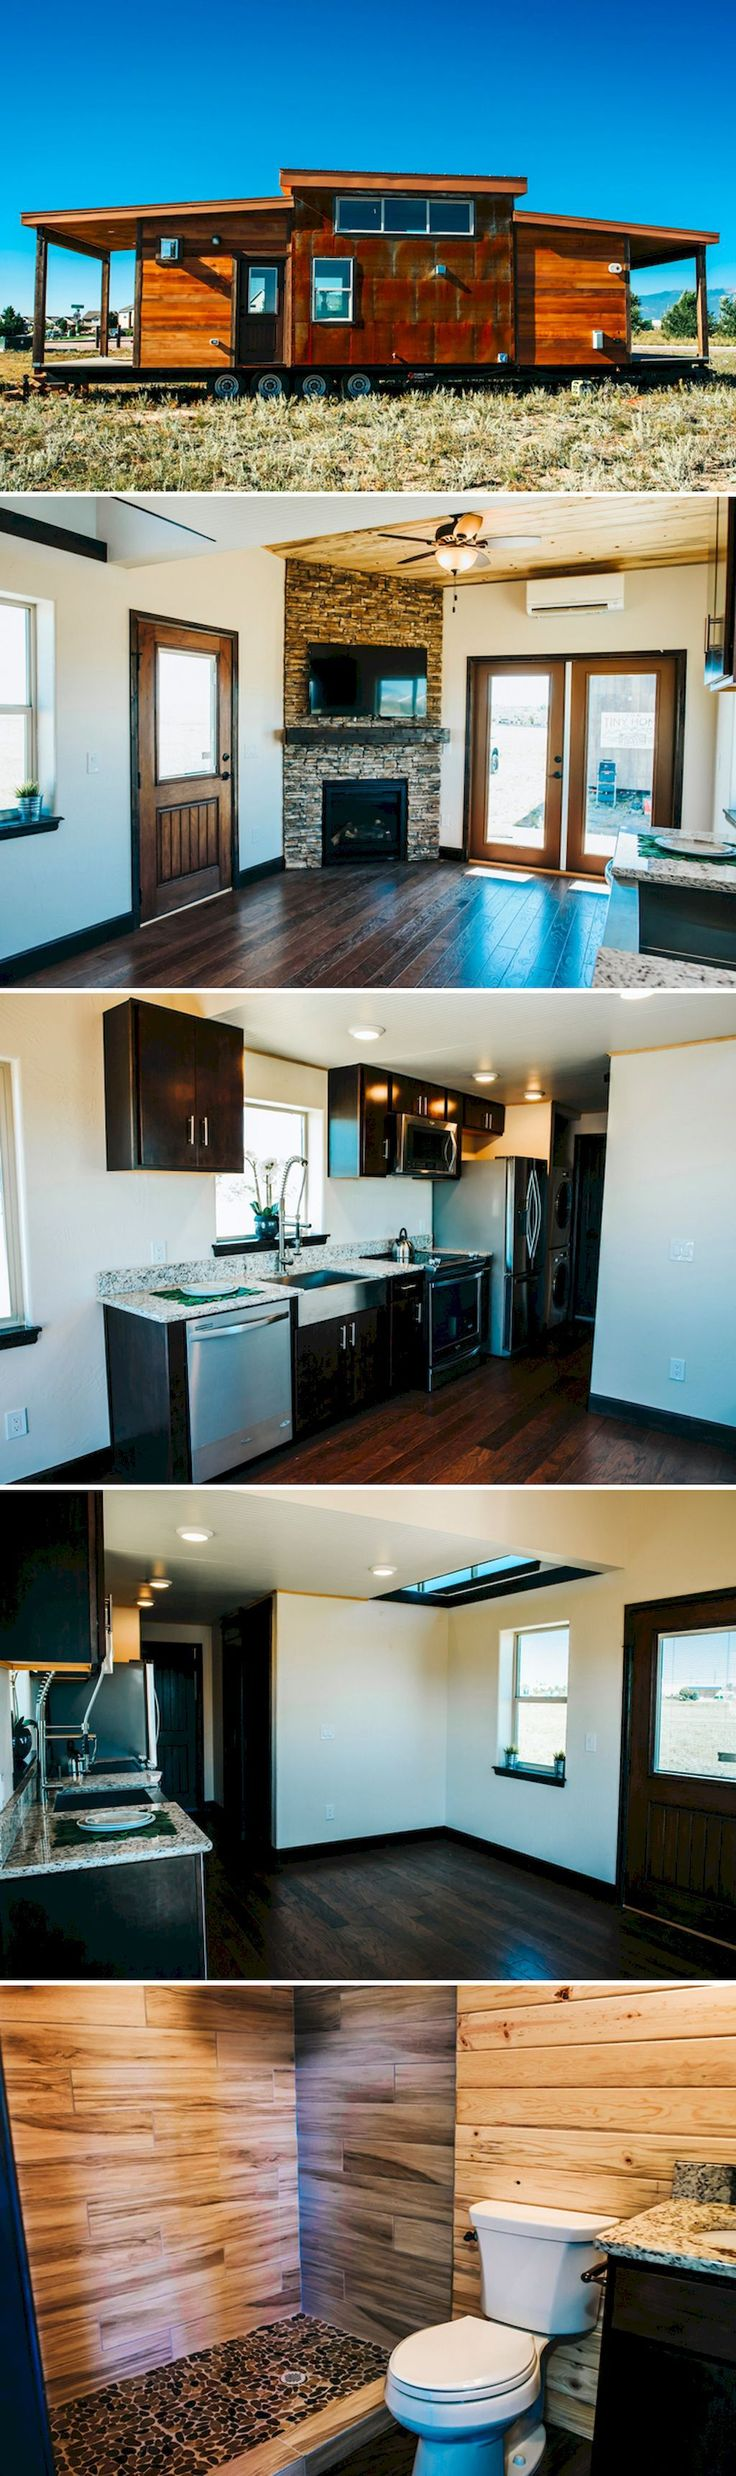 Best 25+ Home renovations ideas on Pinterest | Old home renovation ...